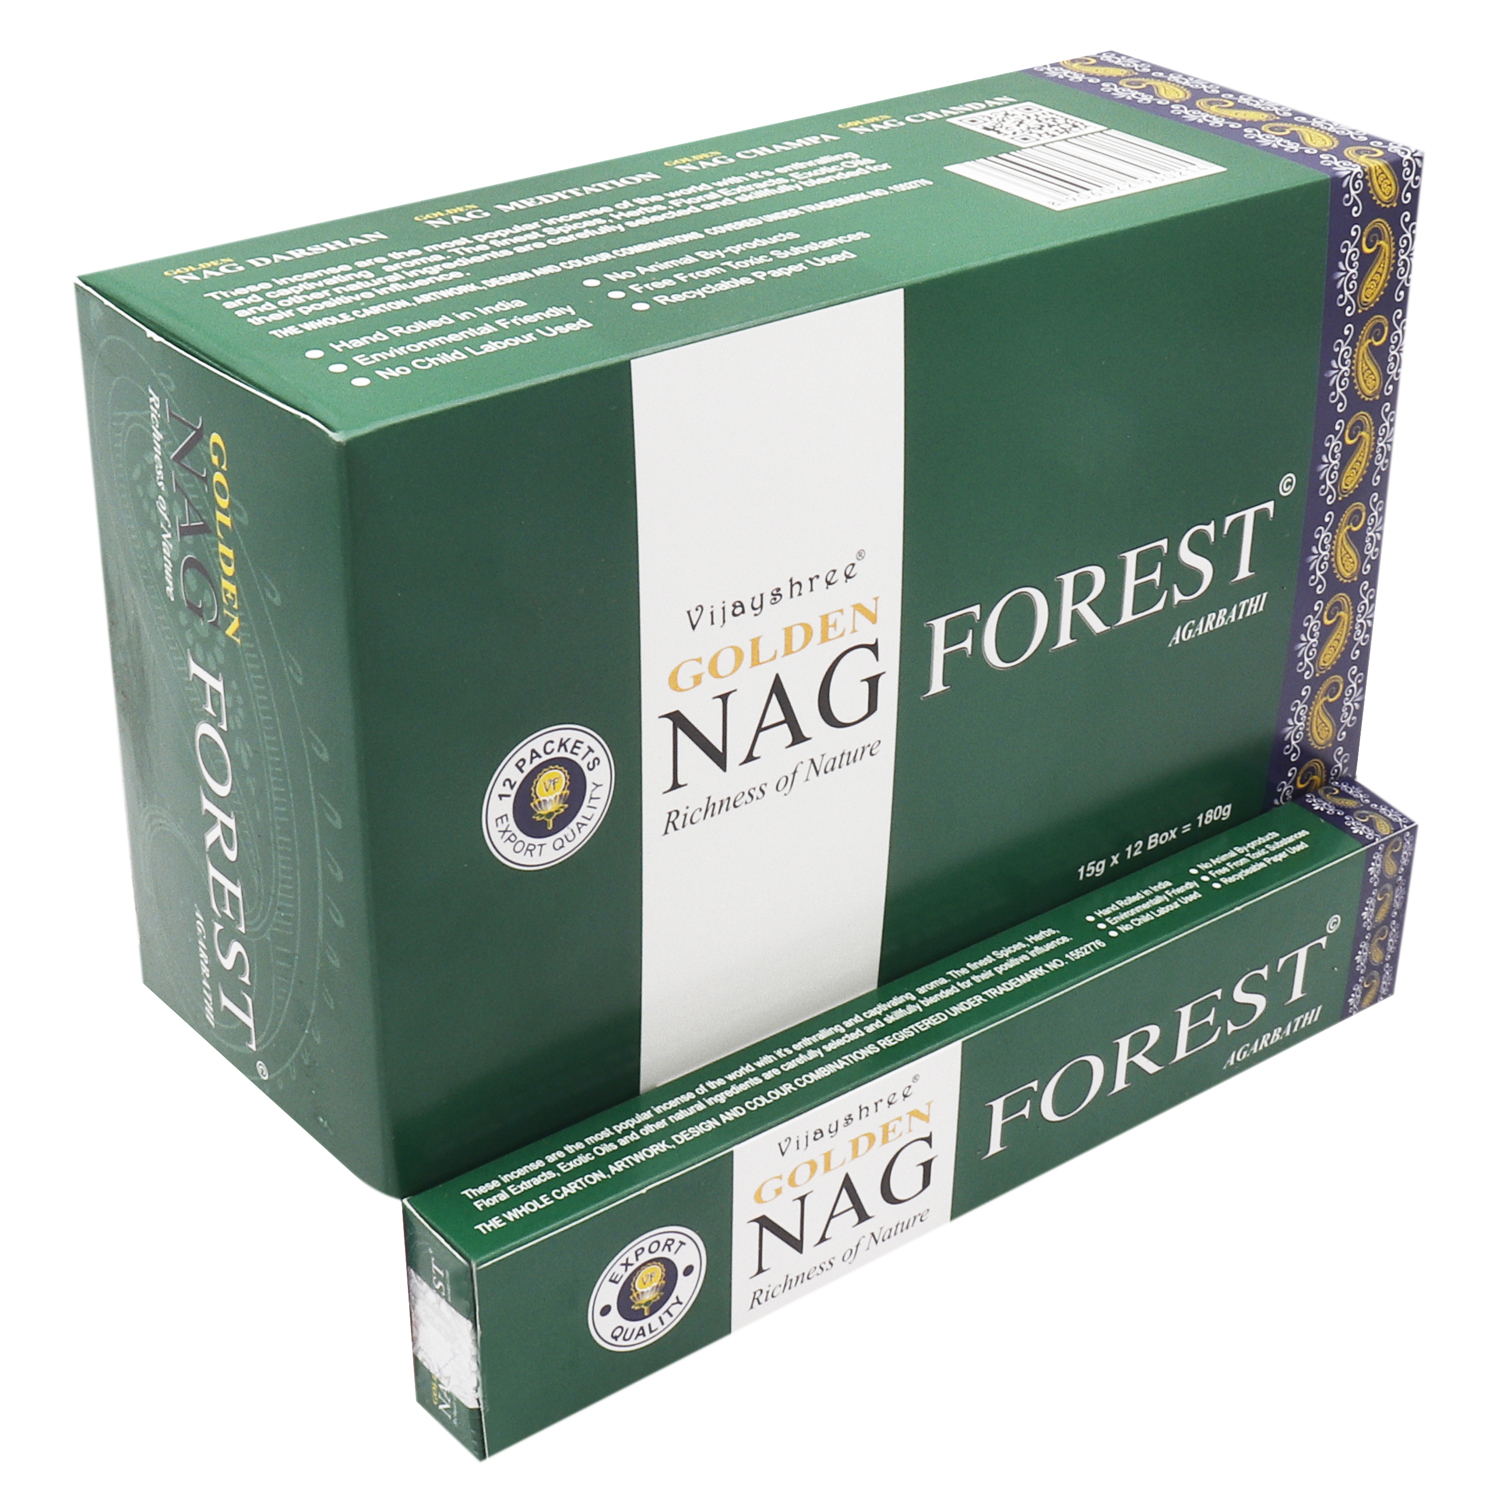 GOLDEN NAG FOREST 15 GM